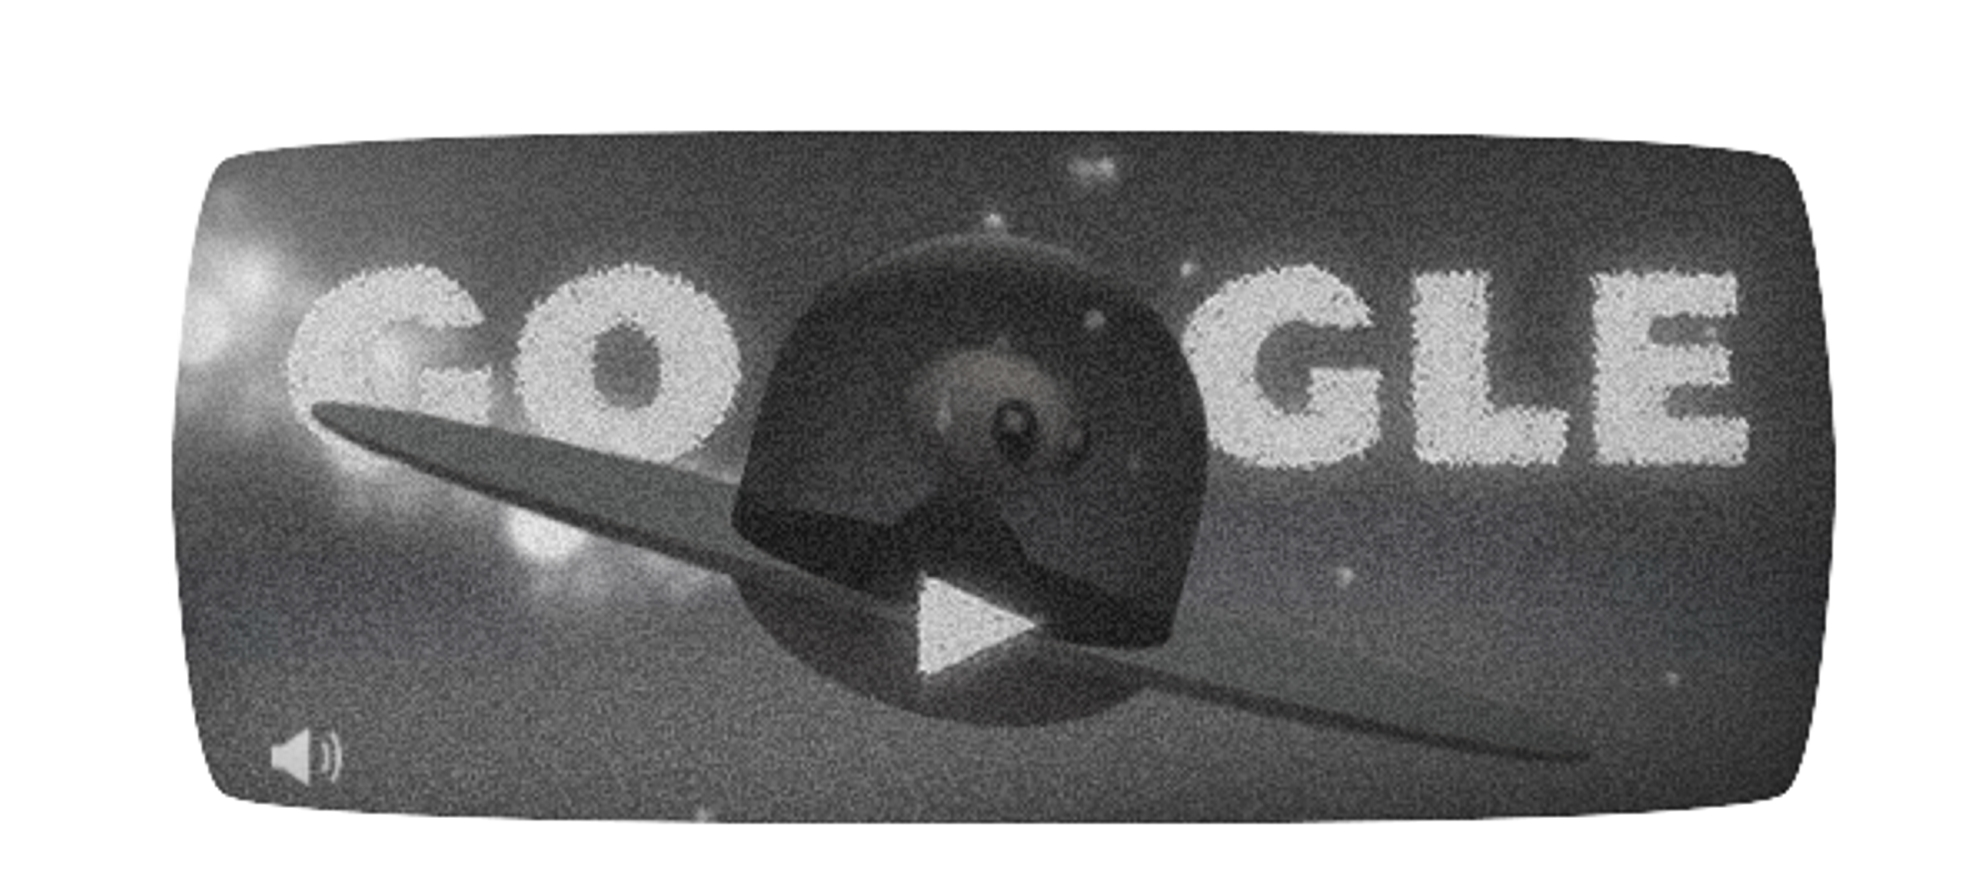 How To Finish The Roswell Ufo Incident Google Doodles Game